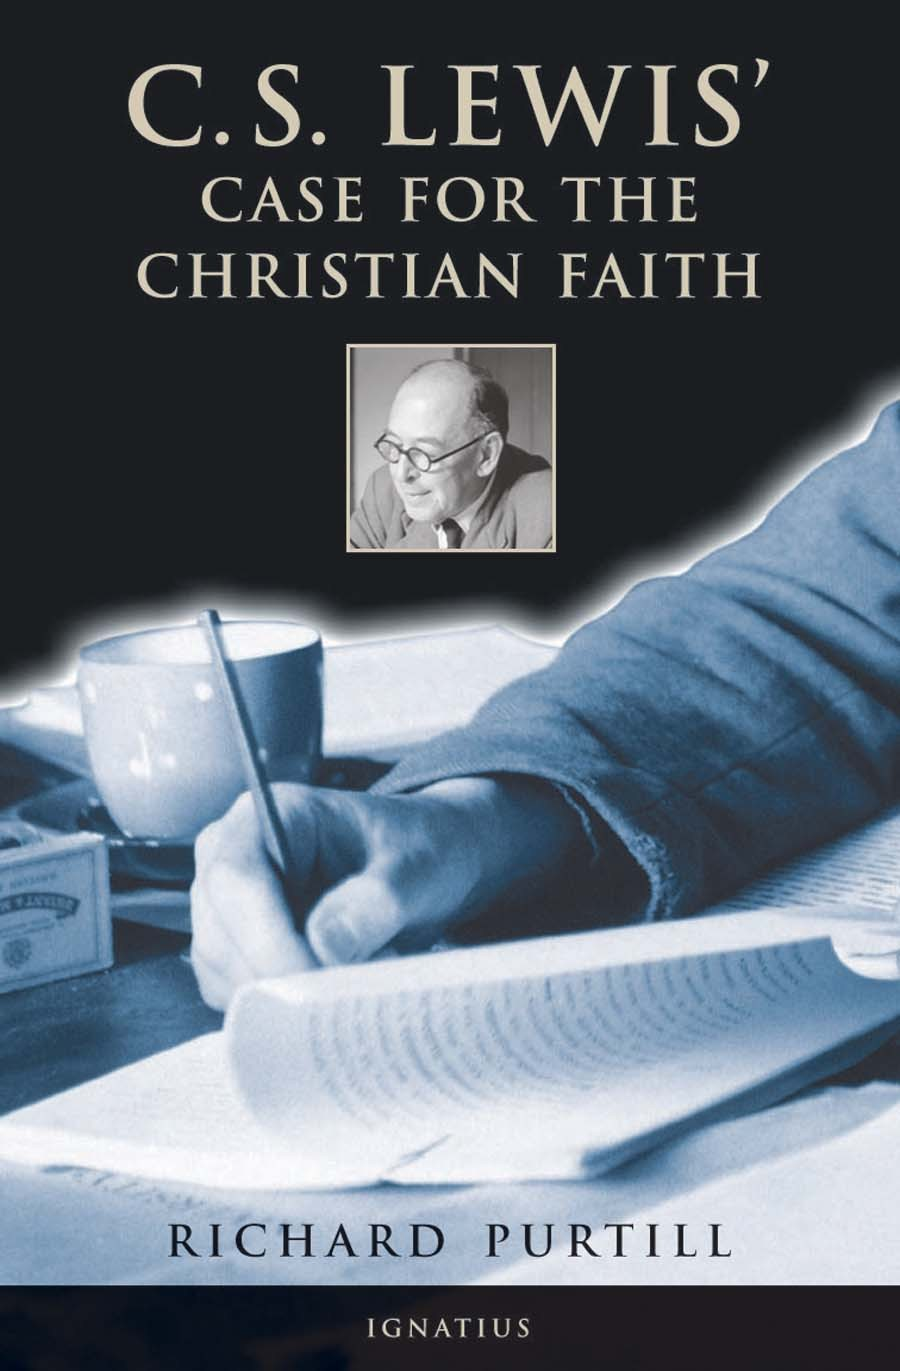 C. S. Lewis Case for the Christian Faith